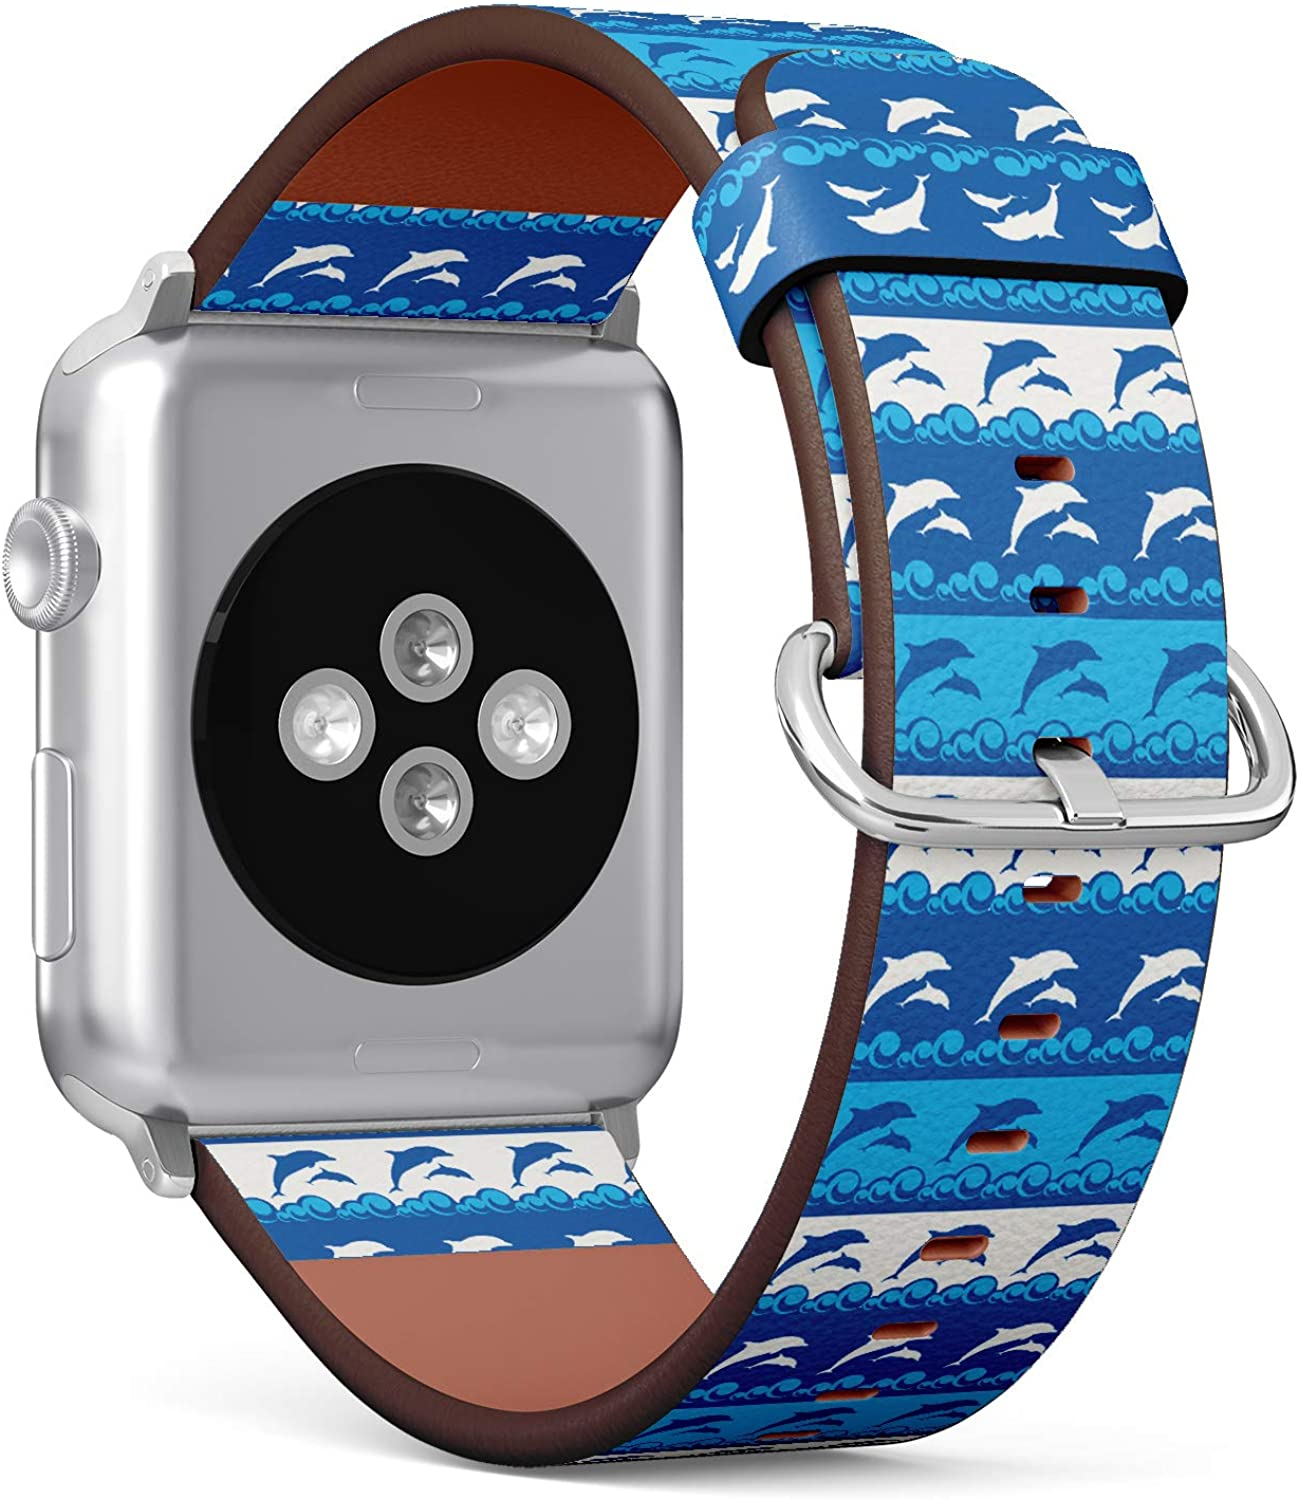 (Dolphins and Ocean Waves Pattern) Patterned Leather Wristband Strap for Apple Watch Series 4/3/2/1 gen,Replacement for iWatch 38mm / 40mm Bands